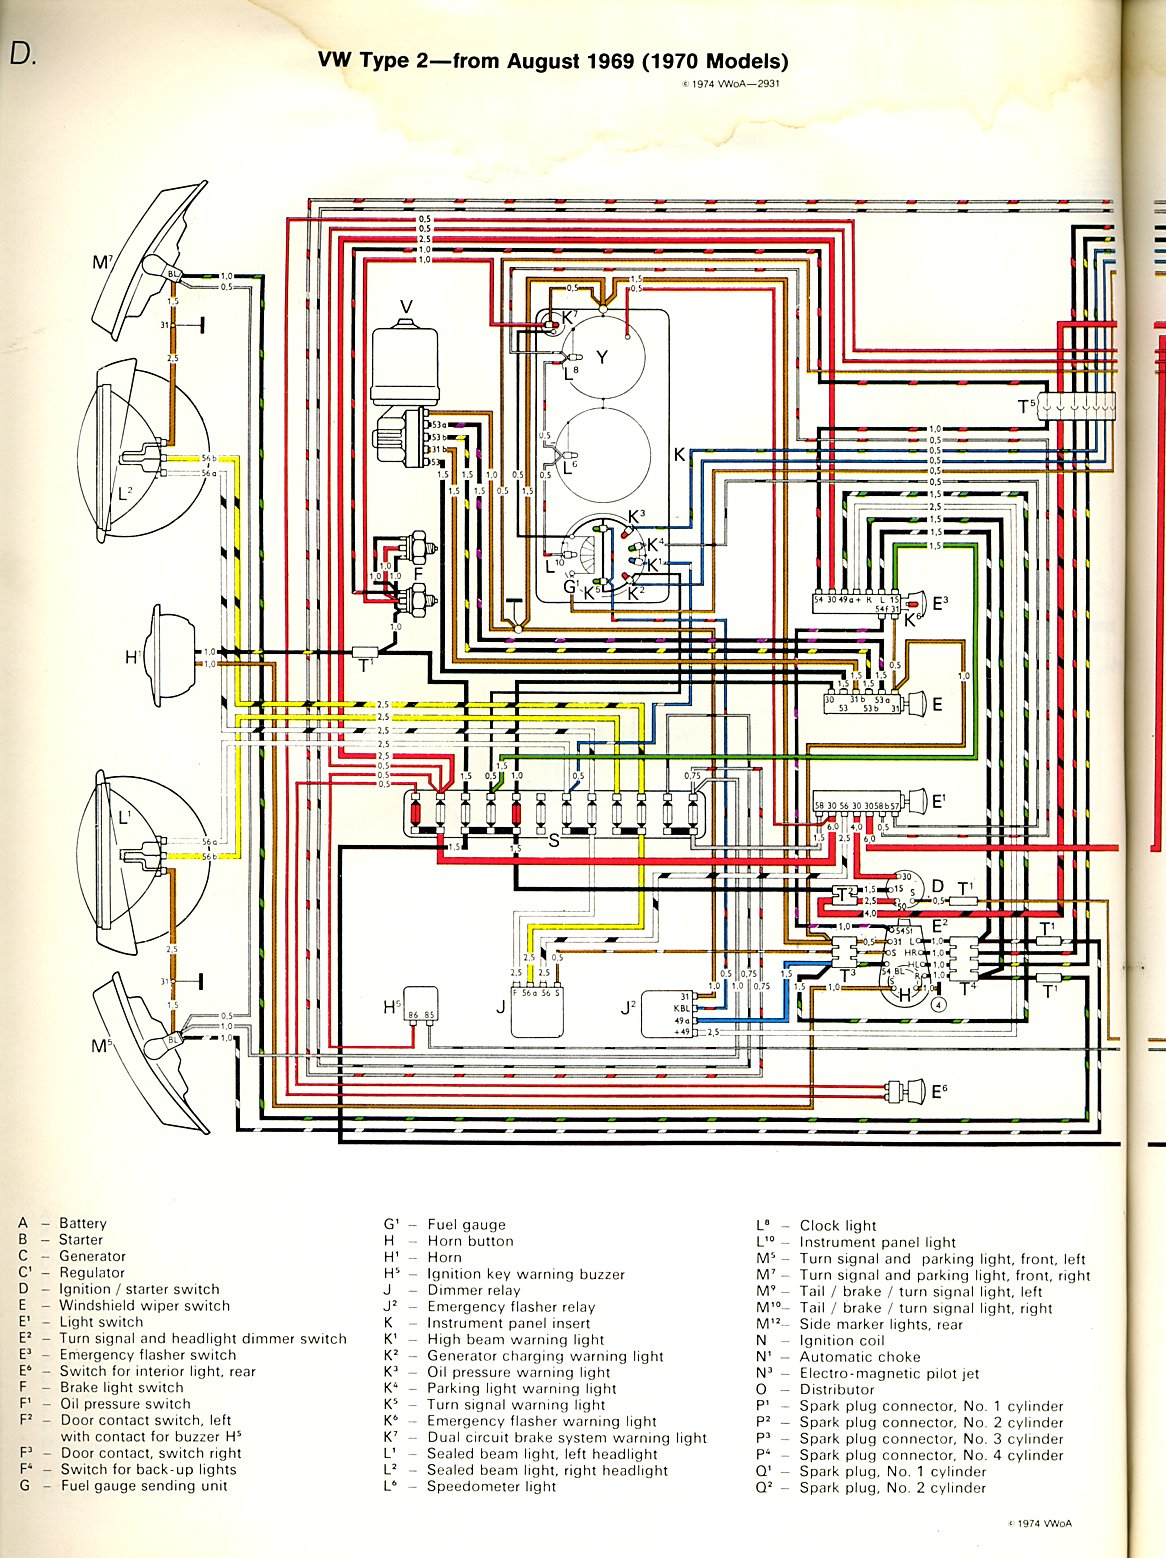 fuse diagram for 1973 vw super beetle wiring diagram for 1973 vw beetle